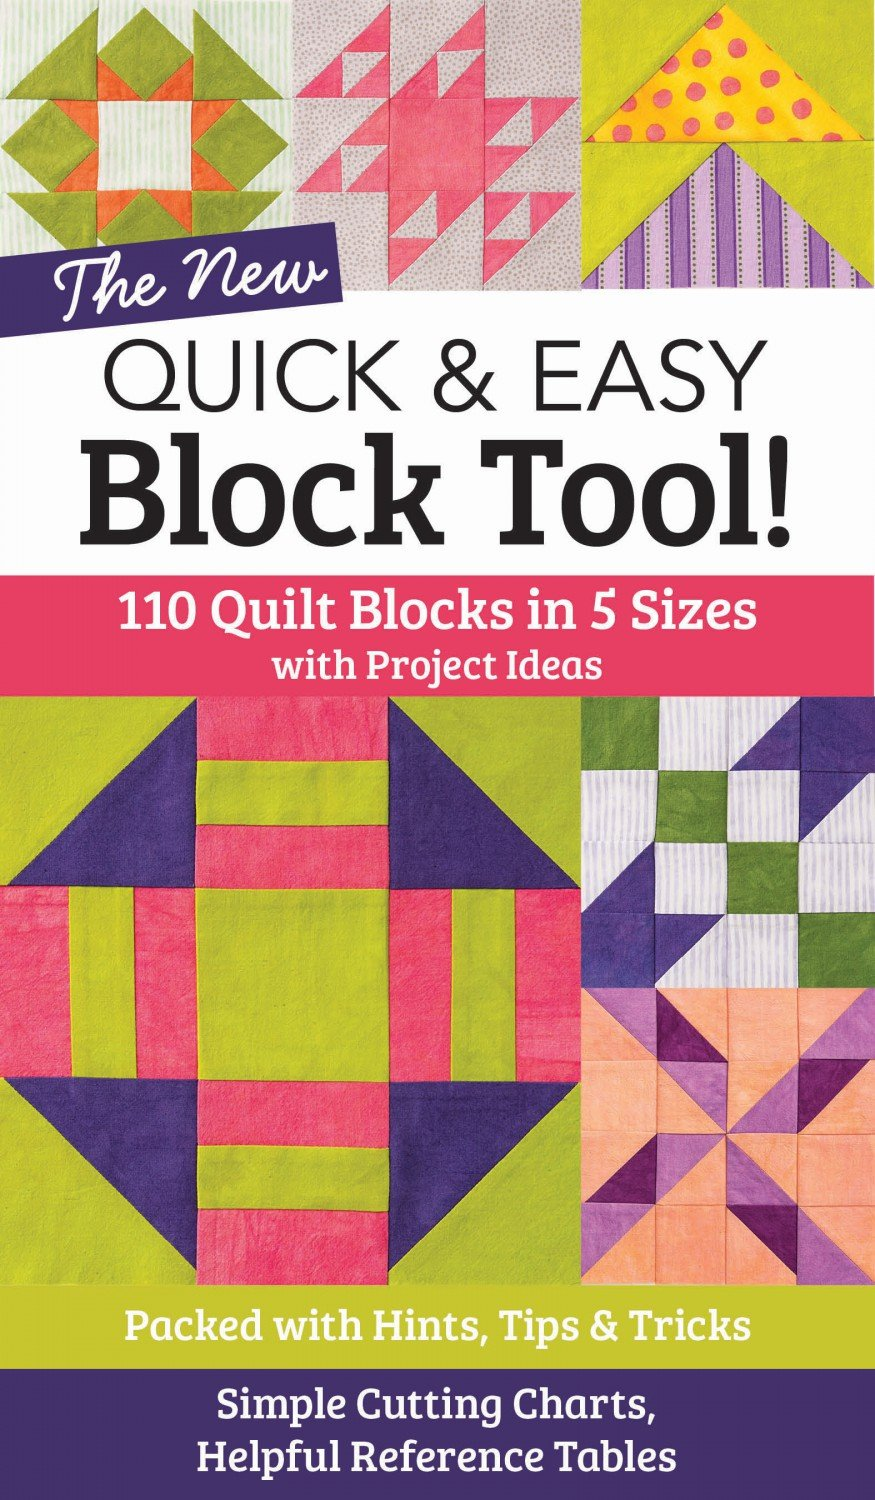 NEW Quick & Easy Block Tool! - Softcover